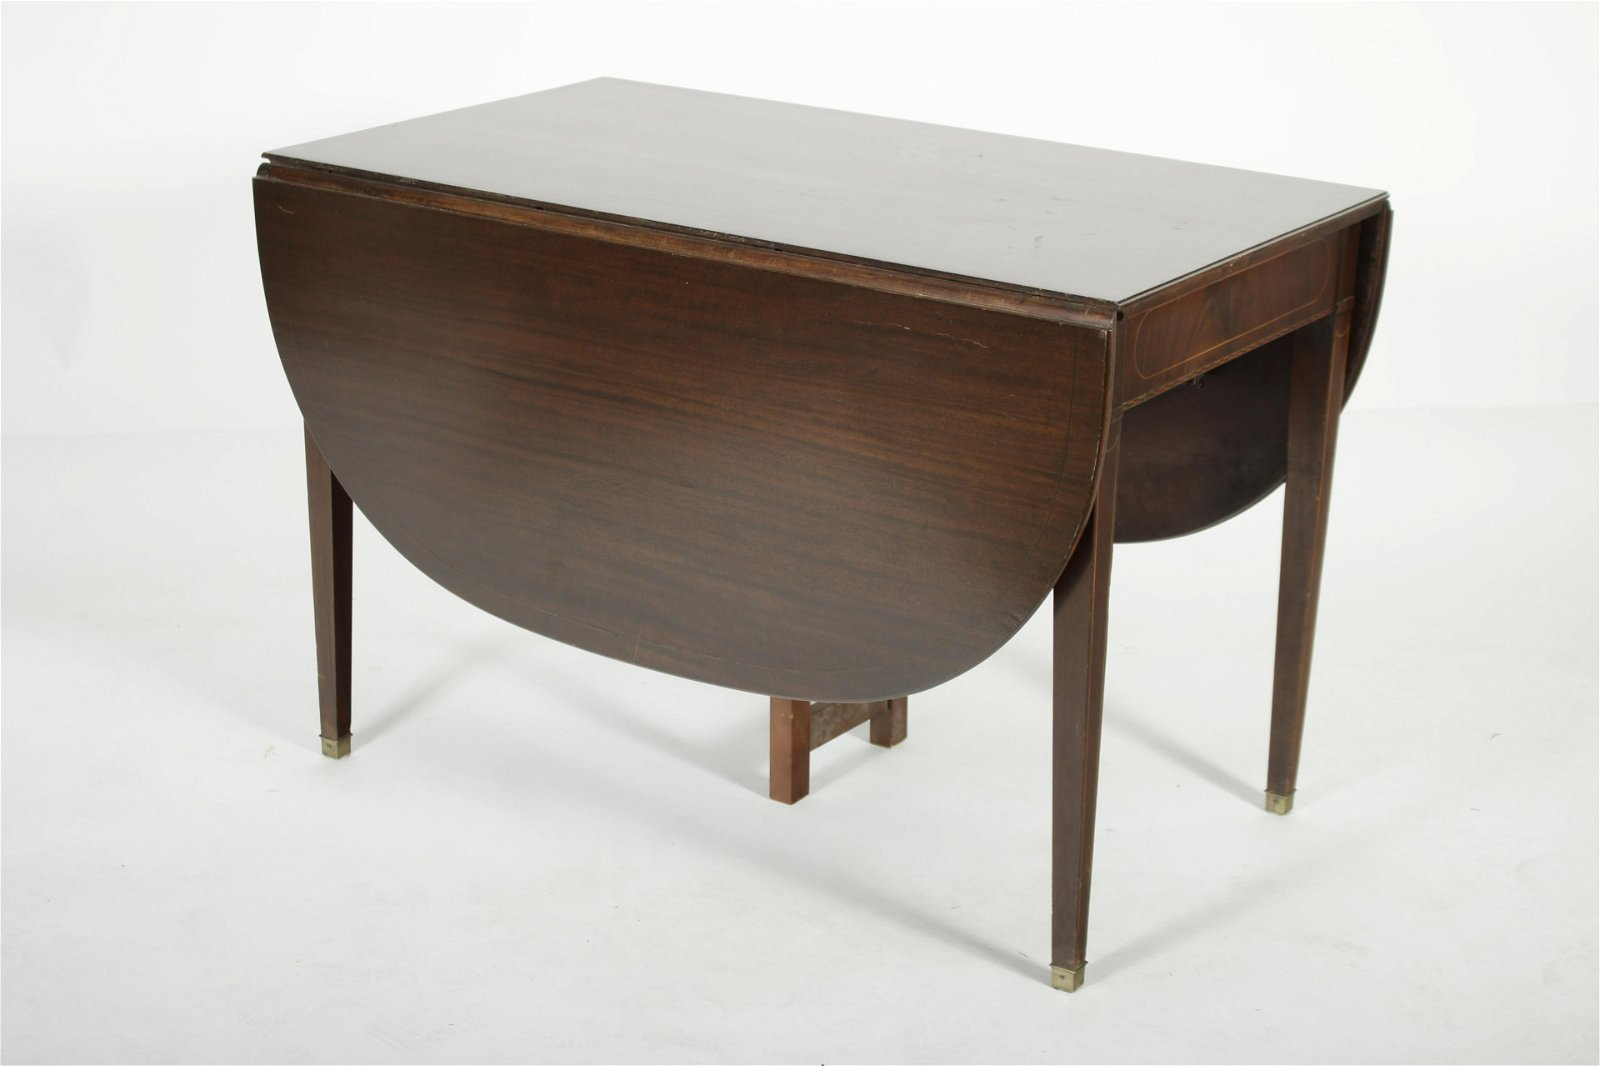 Federal Style Drop Leaf Dining Table, c.1940